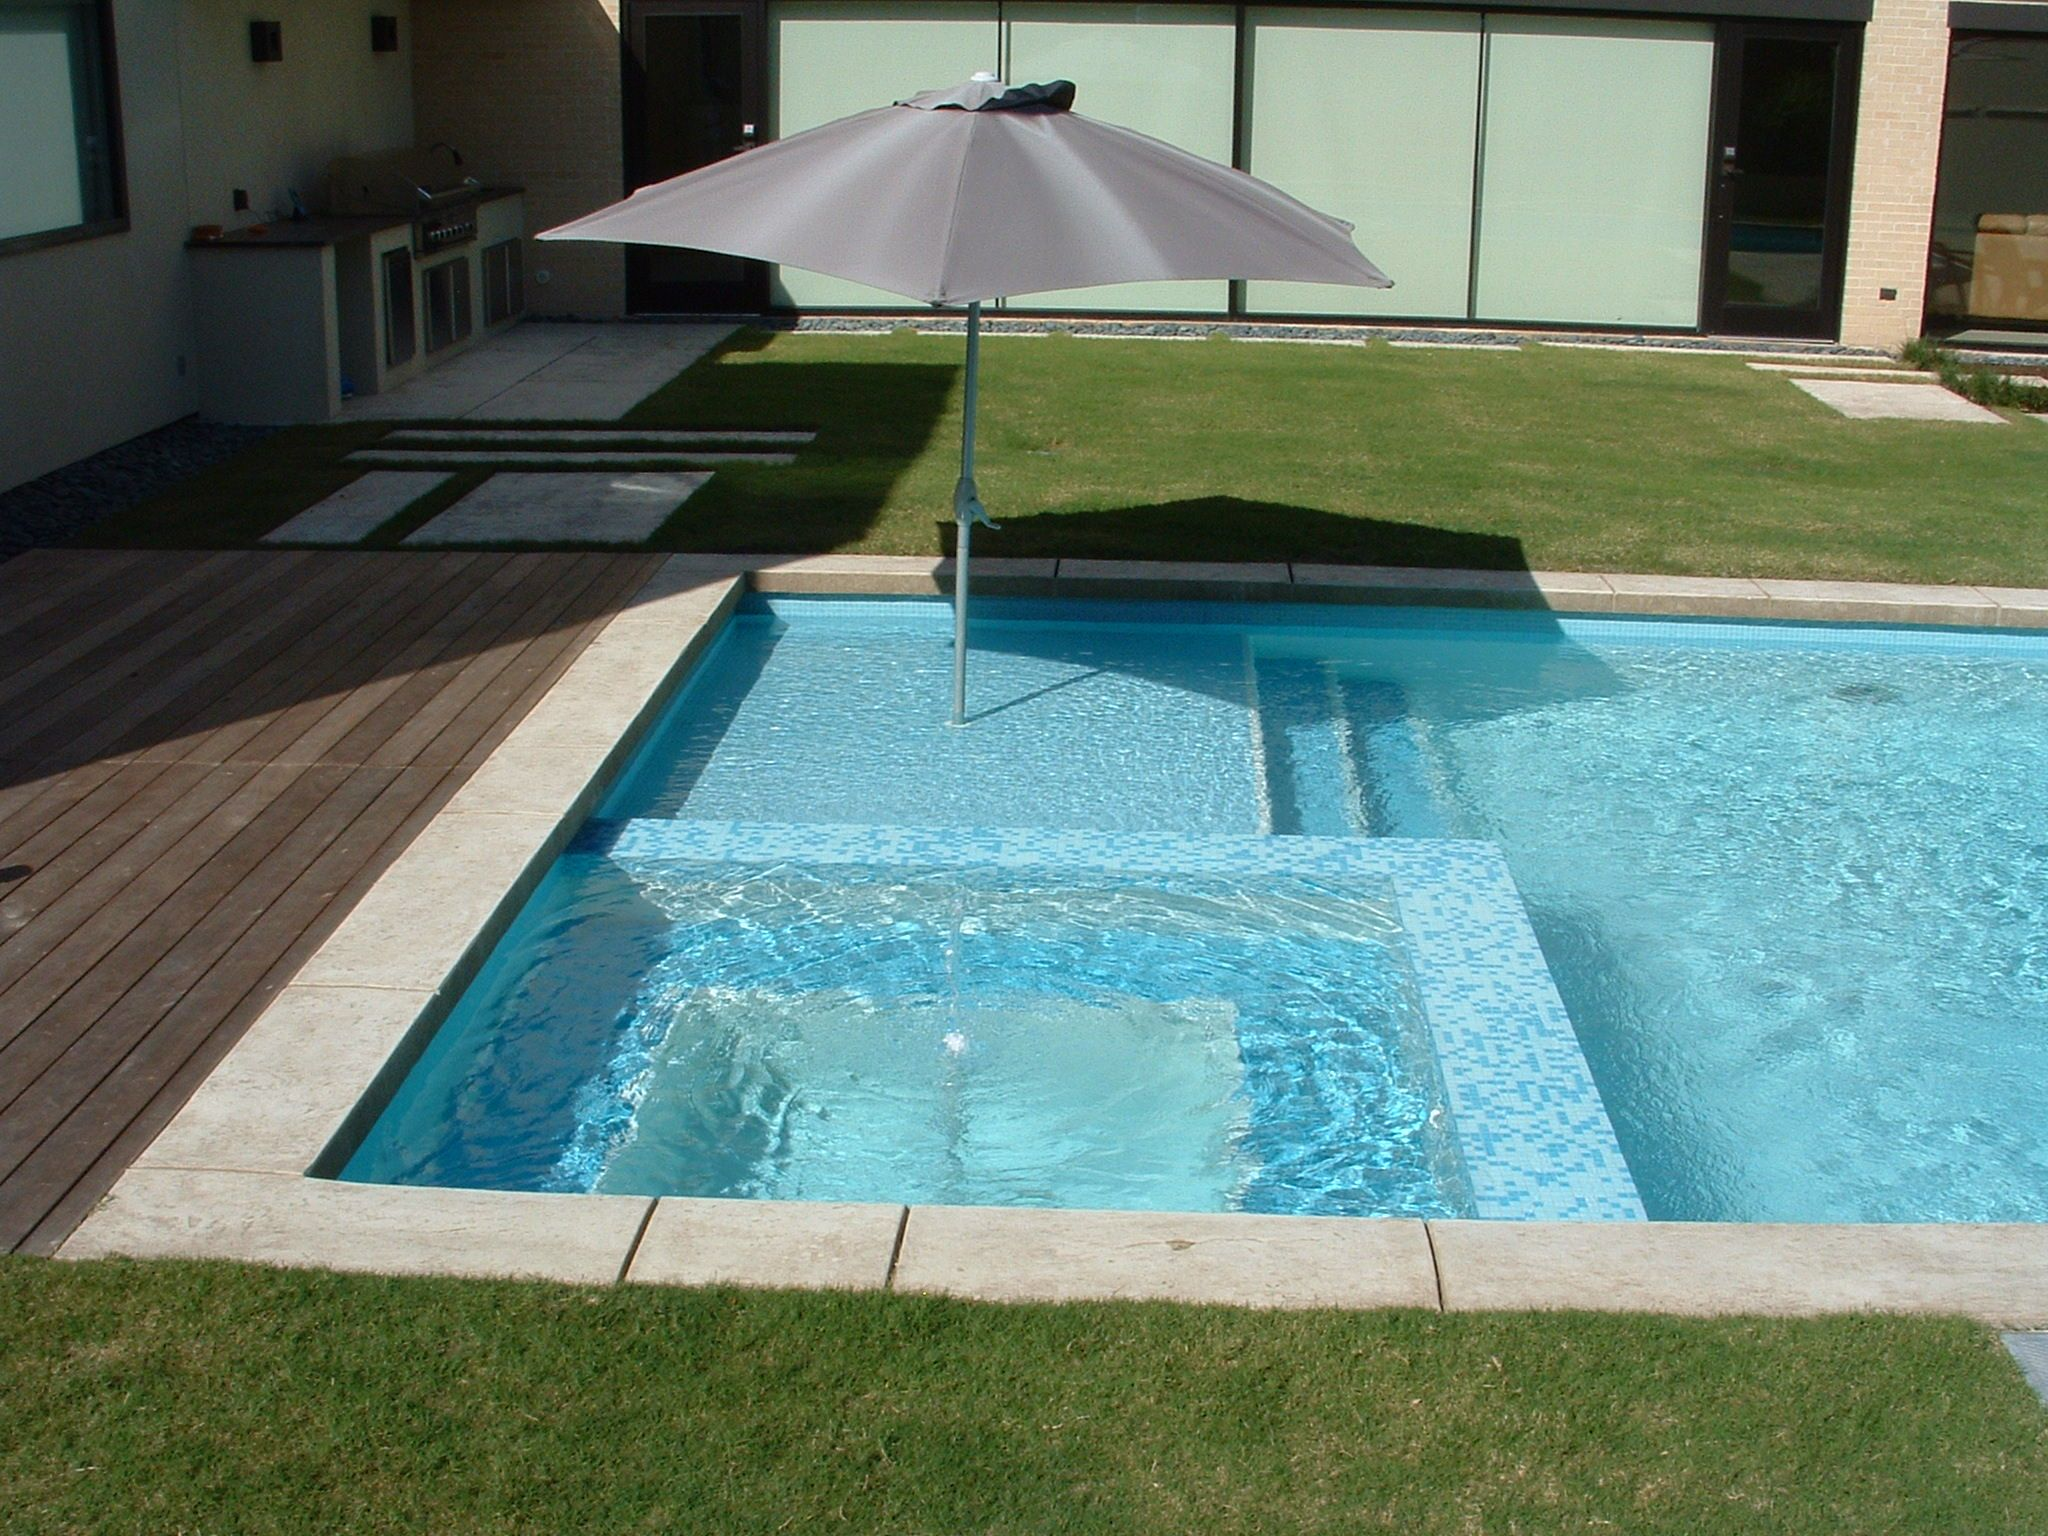 Extraordinary square pool design ideas white ceramic in for Swimming pool spa designs